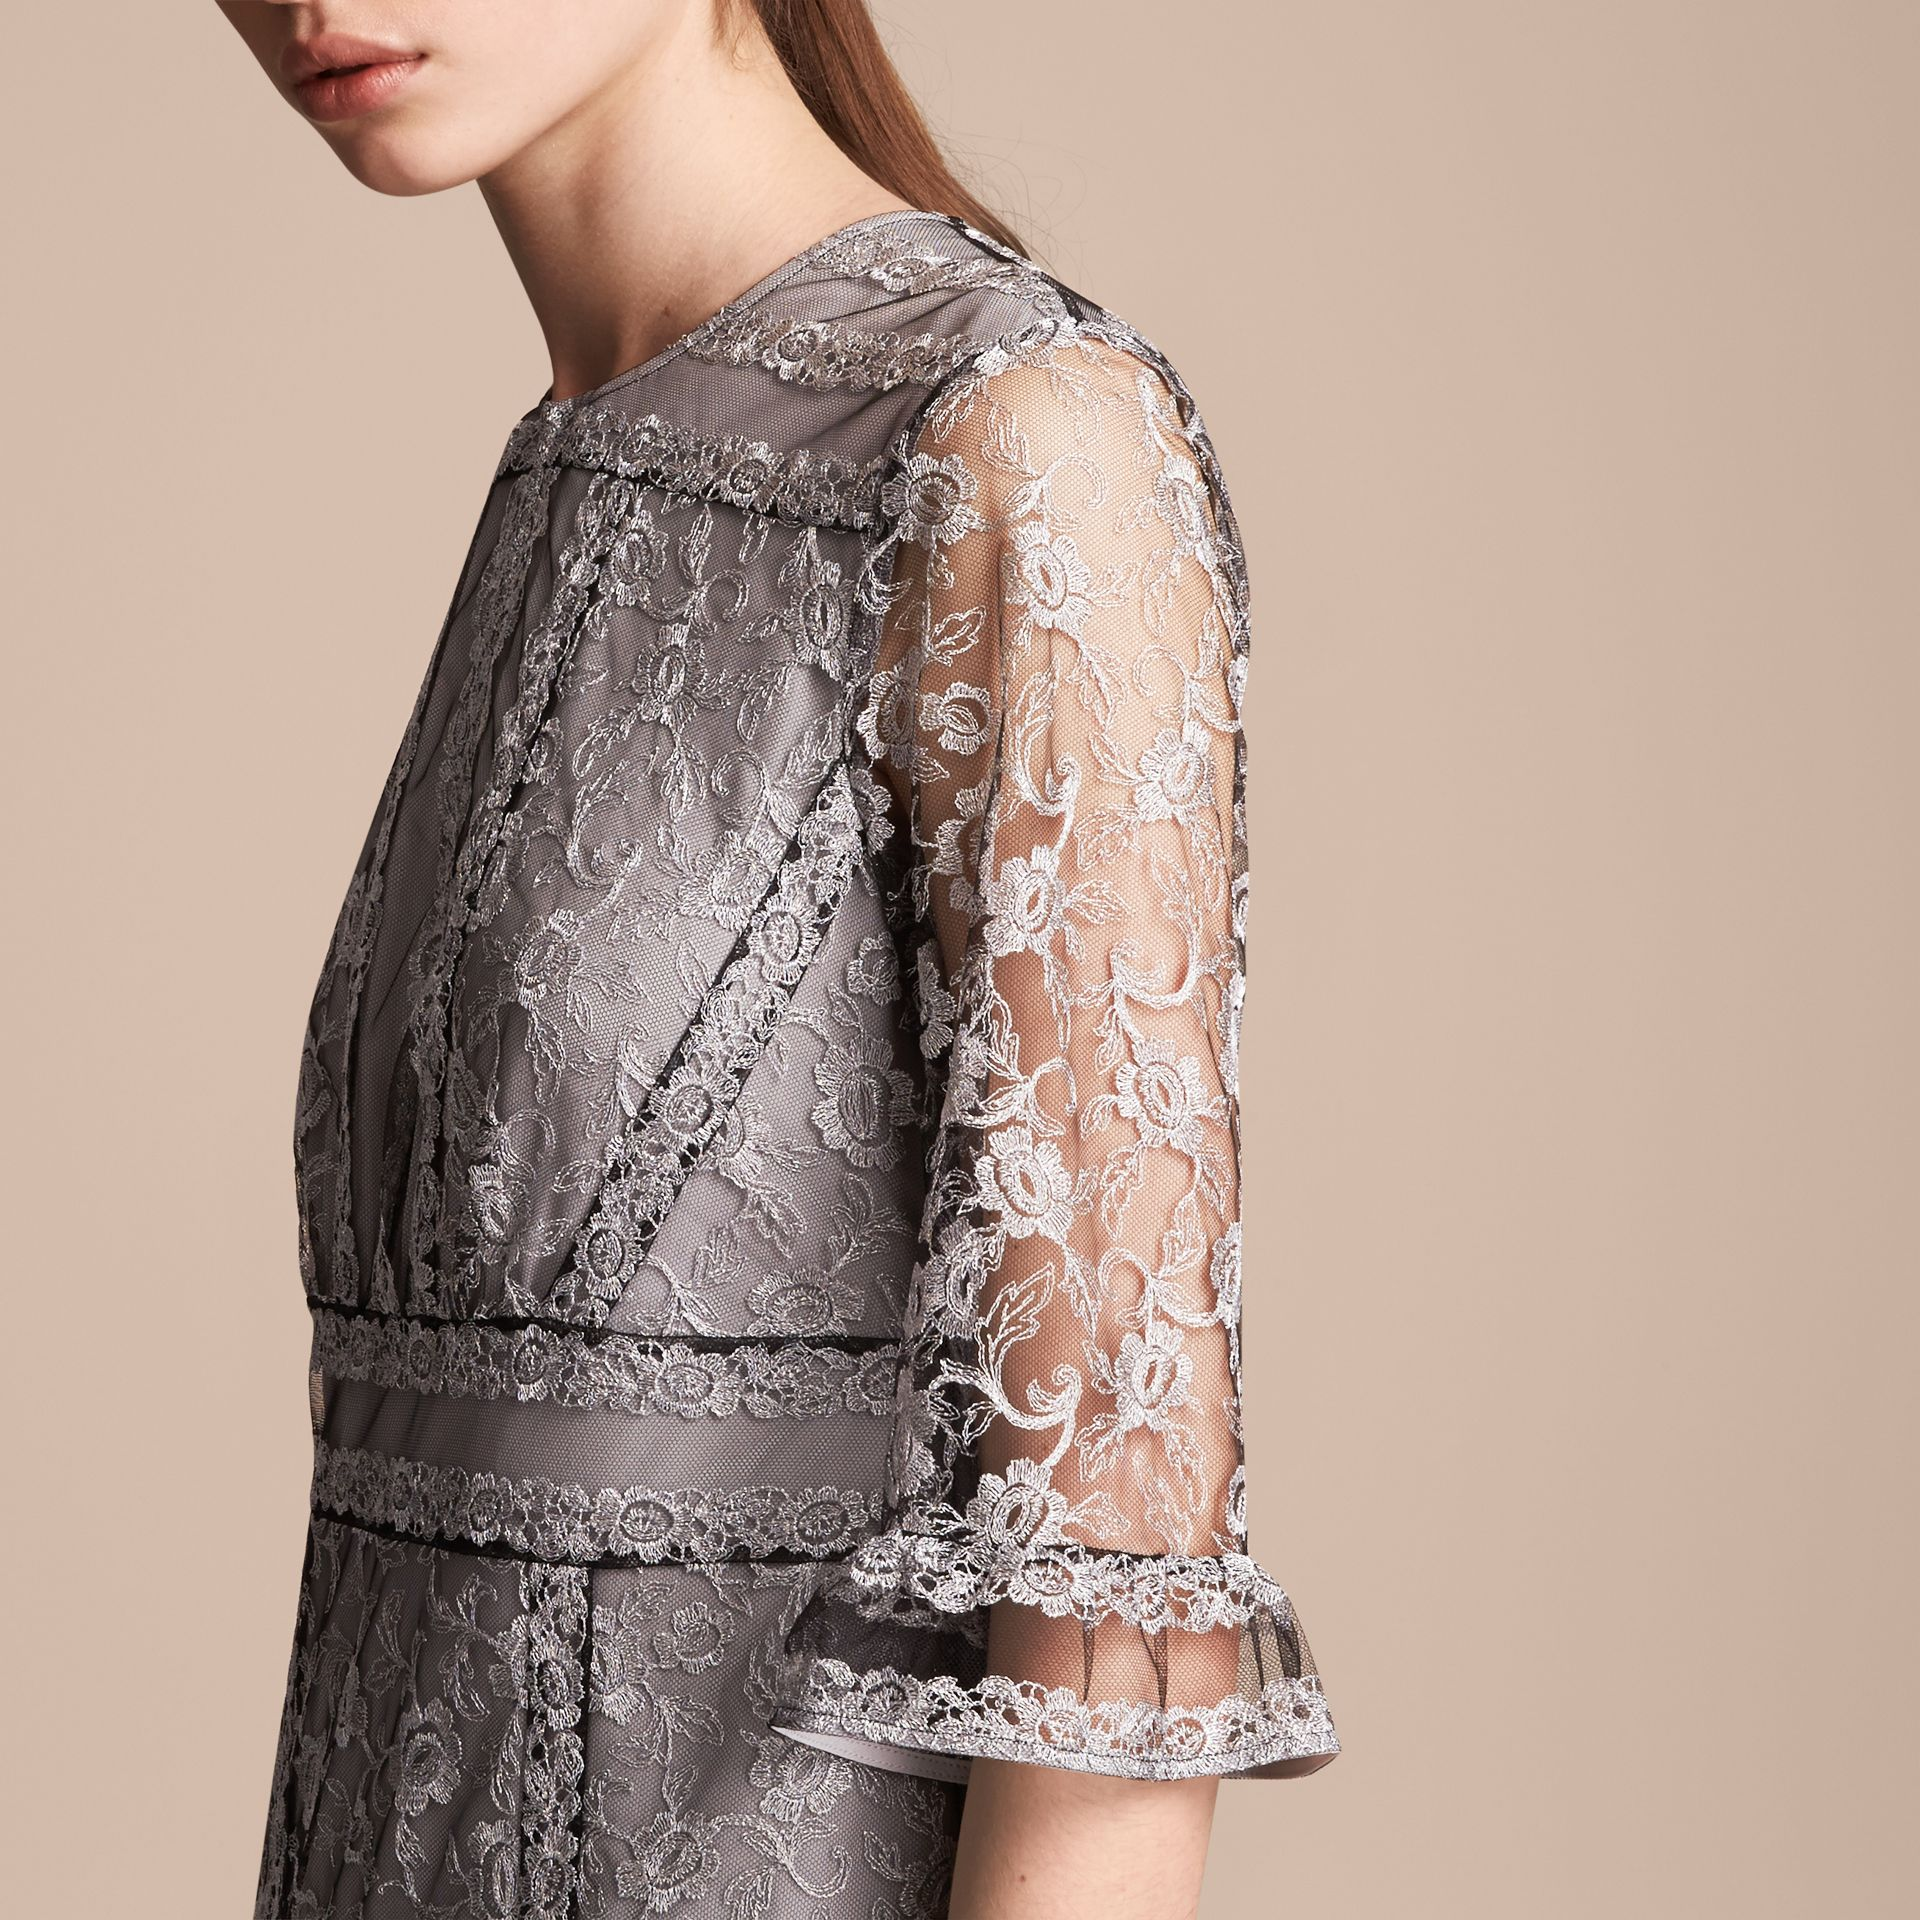 Floral Lace Tulle Dress in Silver - Women | Burberry - gallery image 5